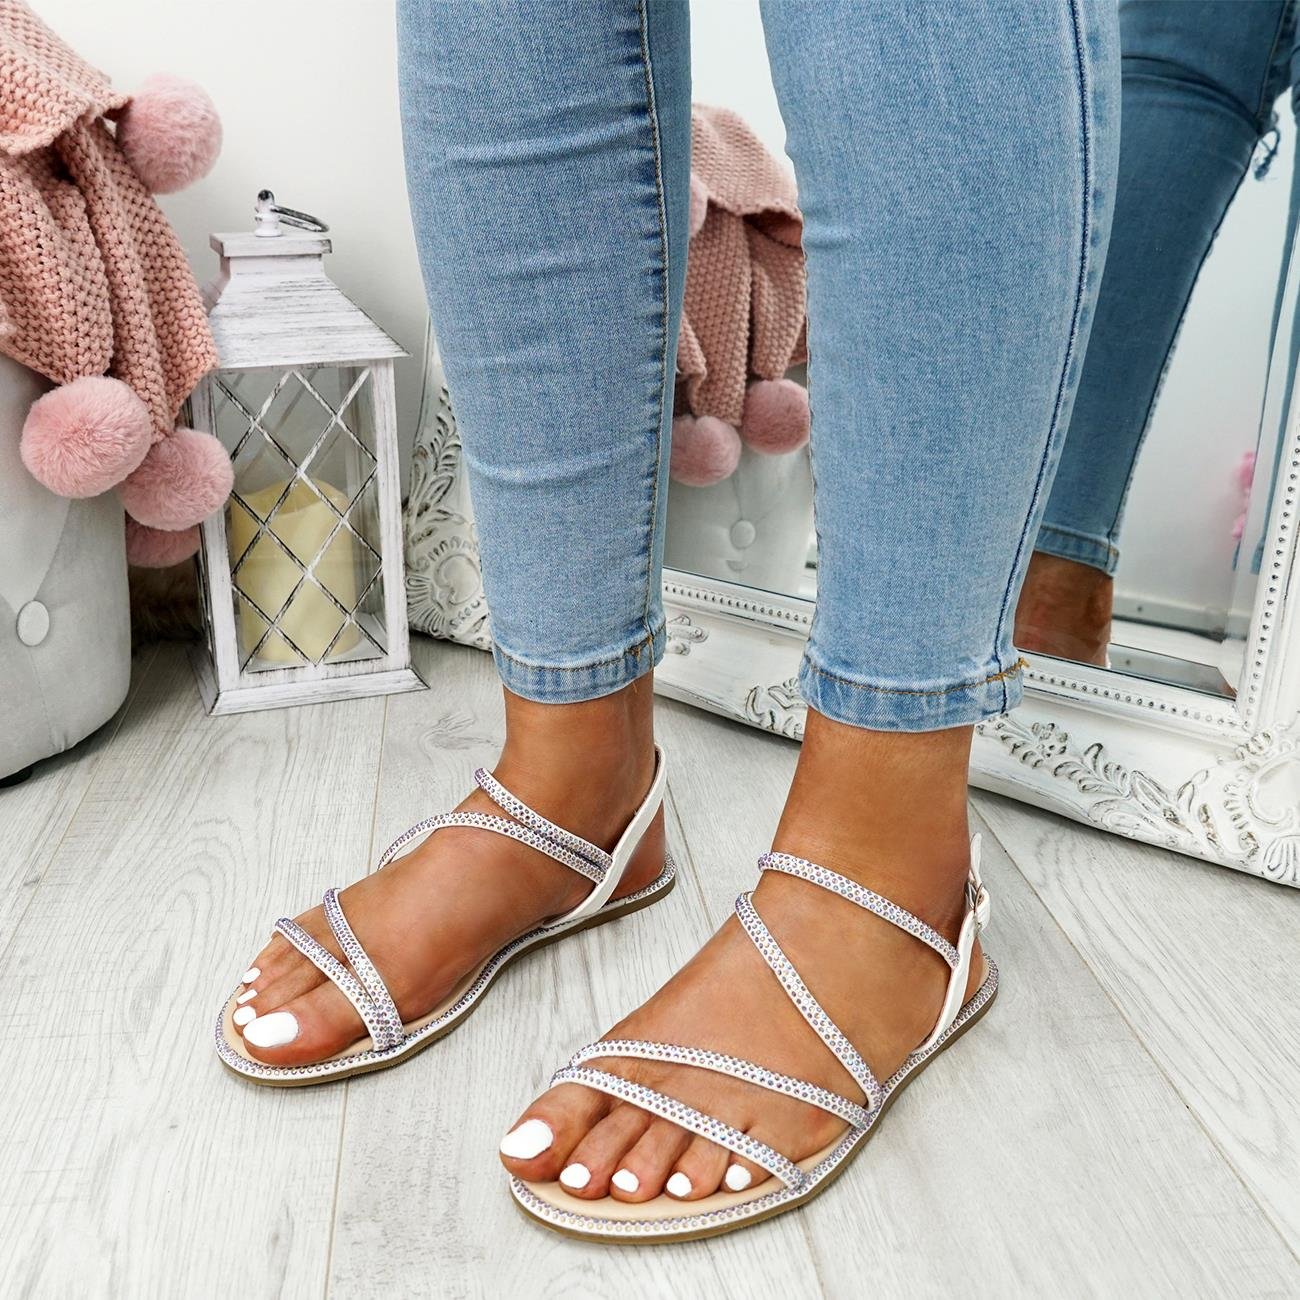 WOMENS-LADIES-STUDDED-ANKLE-STRAP-FLAT-SHOES-PARTY-CLUB-SANDALS-SHOES-SIZE-UK thumbnail 21